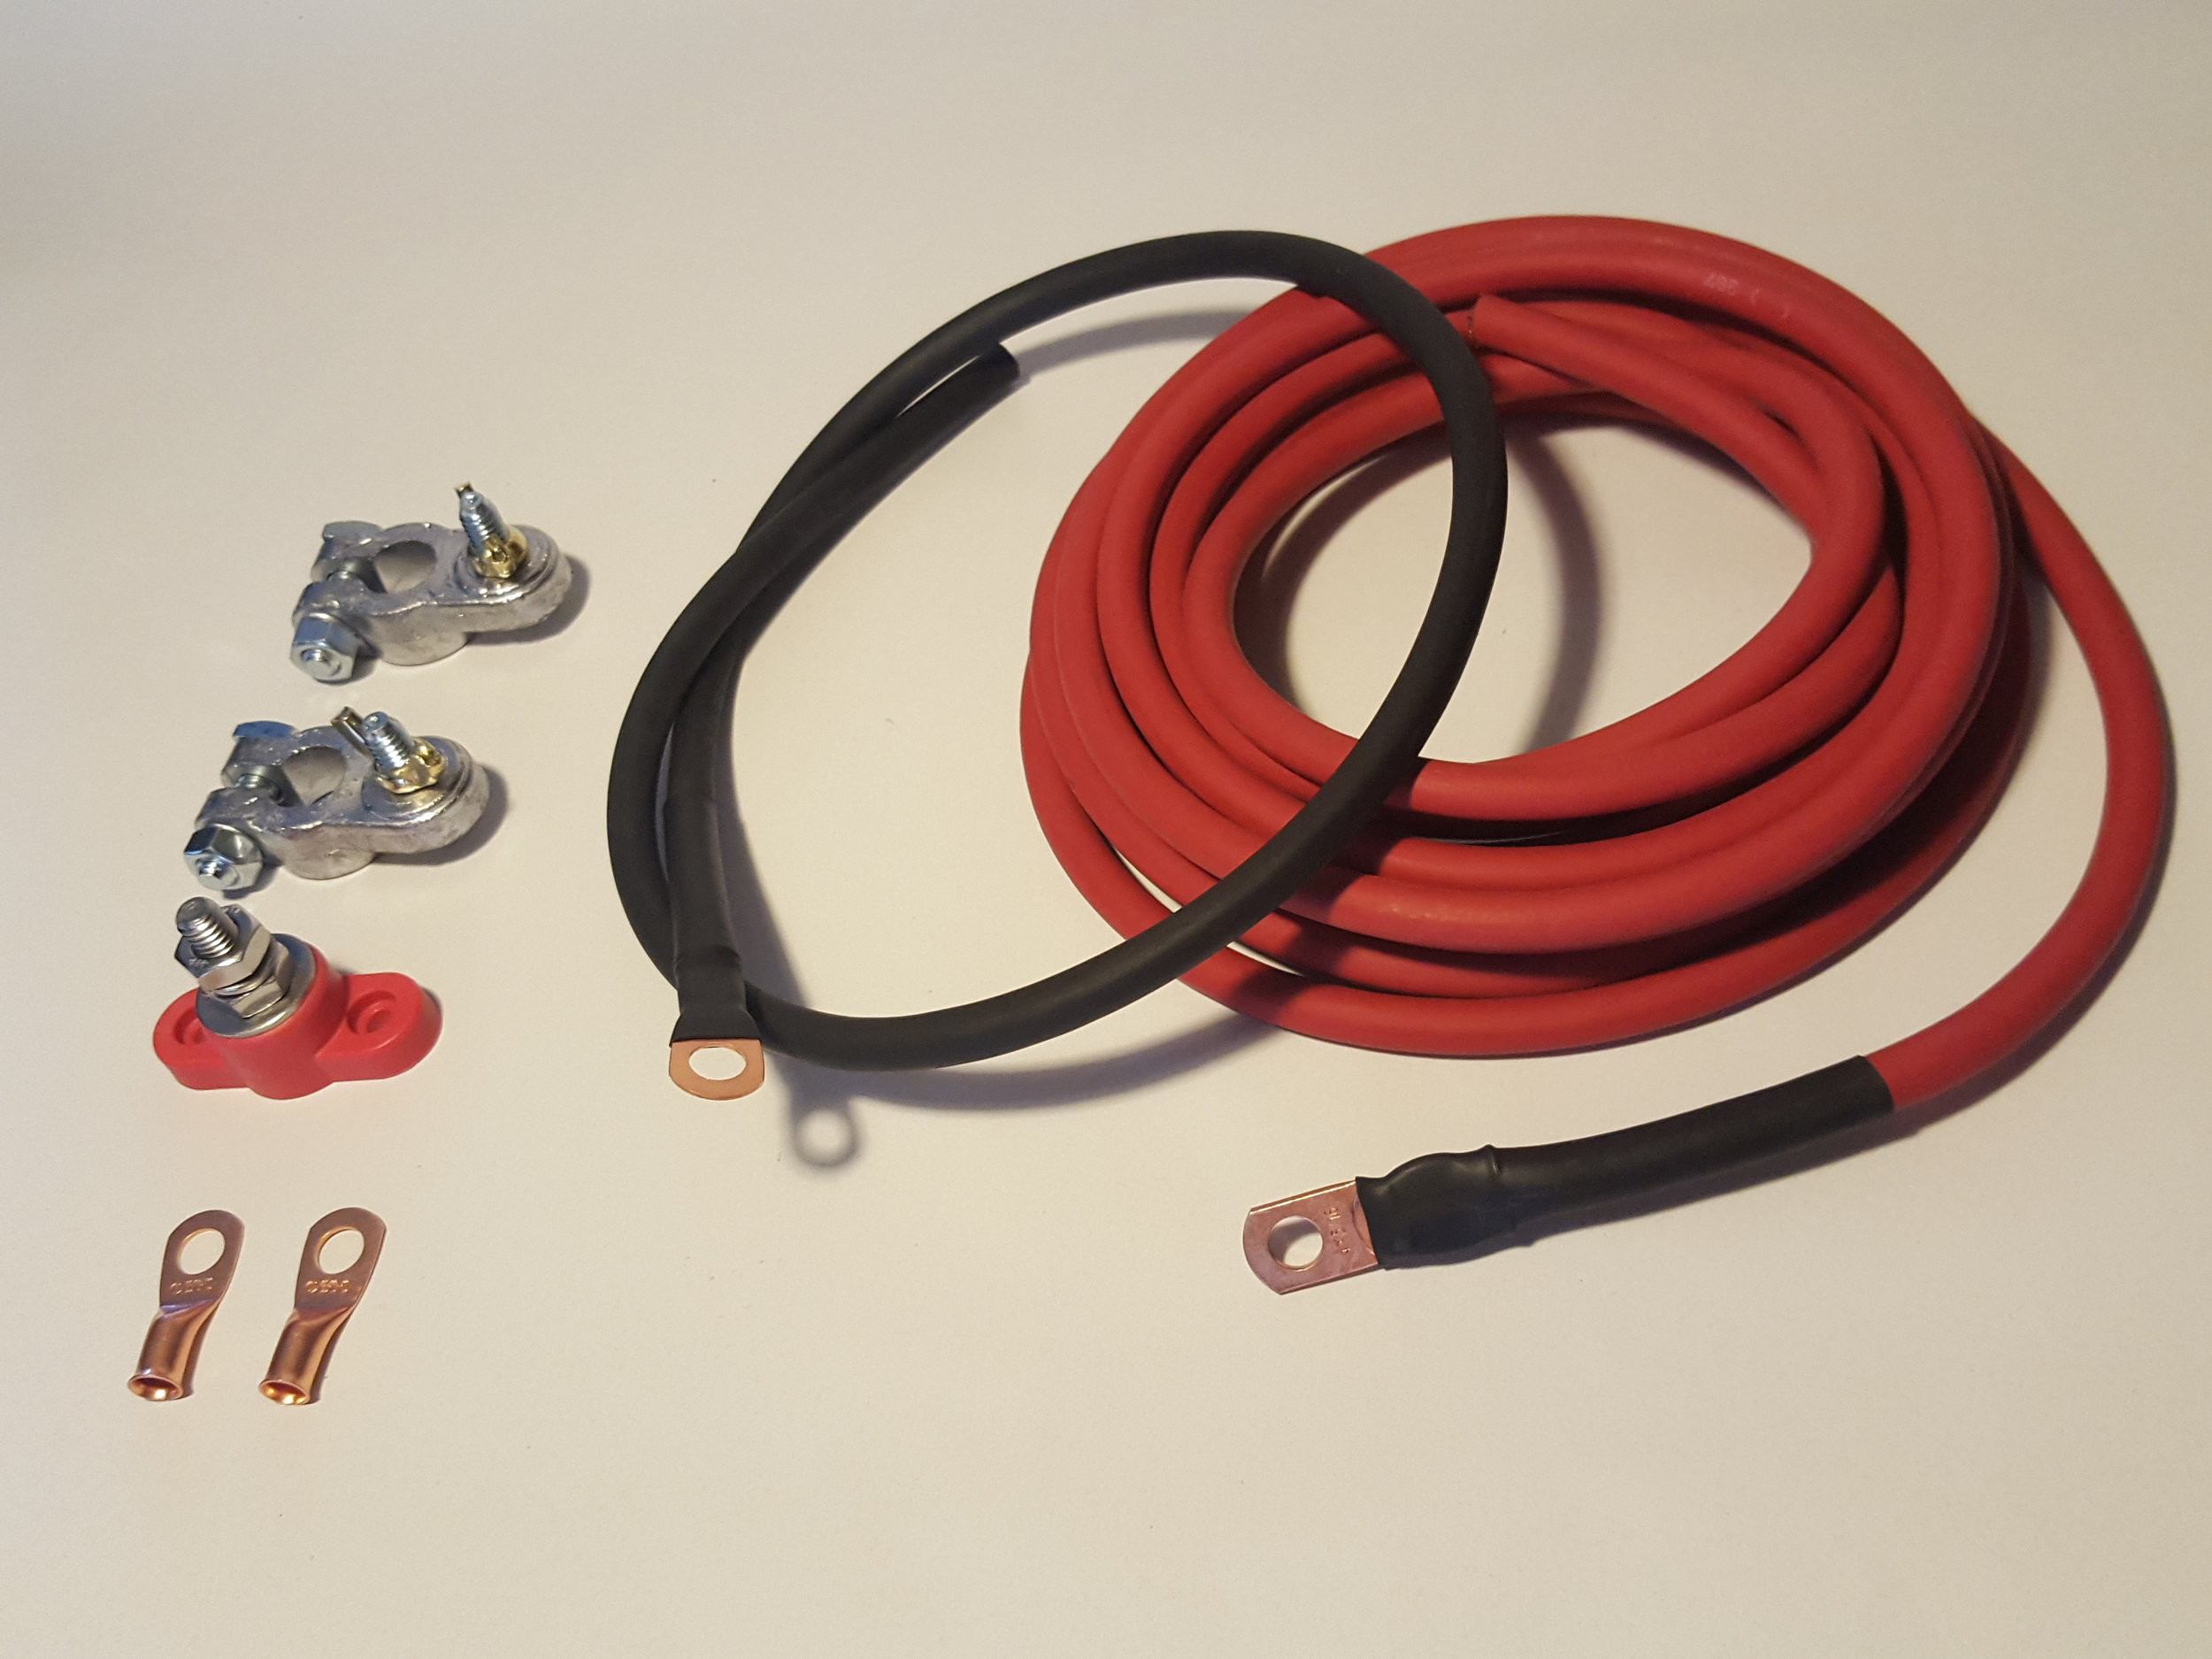 UNIVERSAL FOR ANY VEHICLE MADE IN THE USA BATTERY RELOCATION KIT 0 GAUGE WIRE